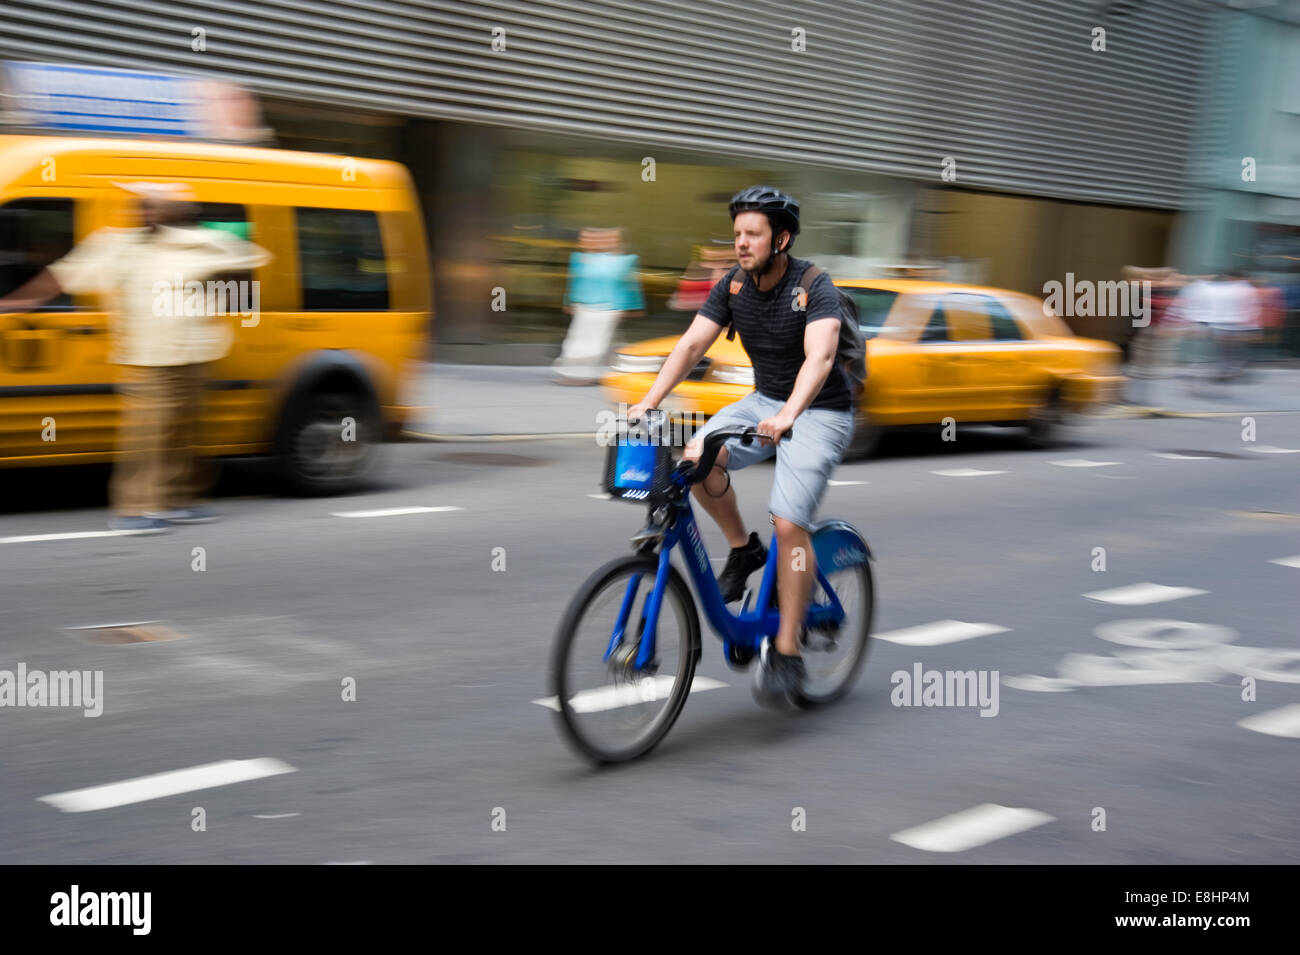 Bicyclist in New York City - Stock Image